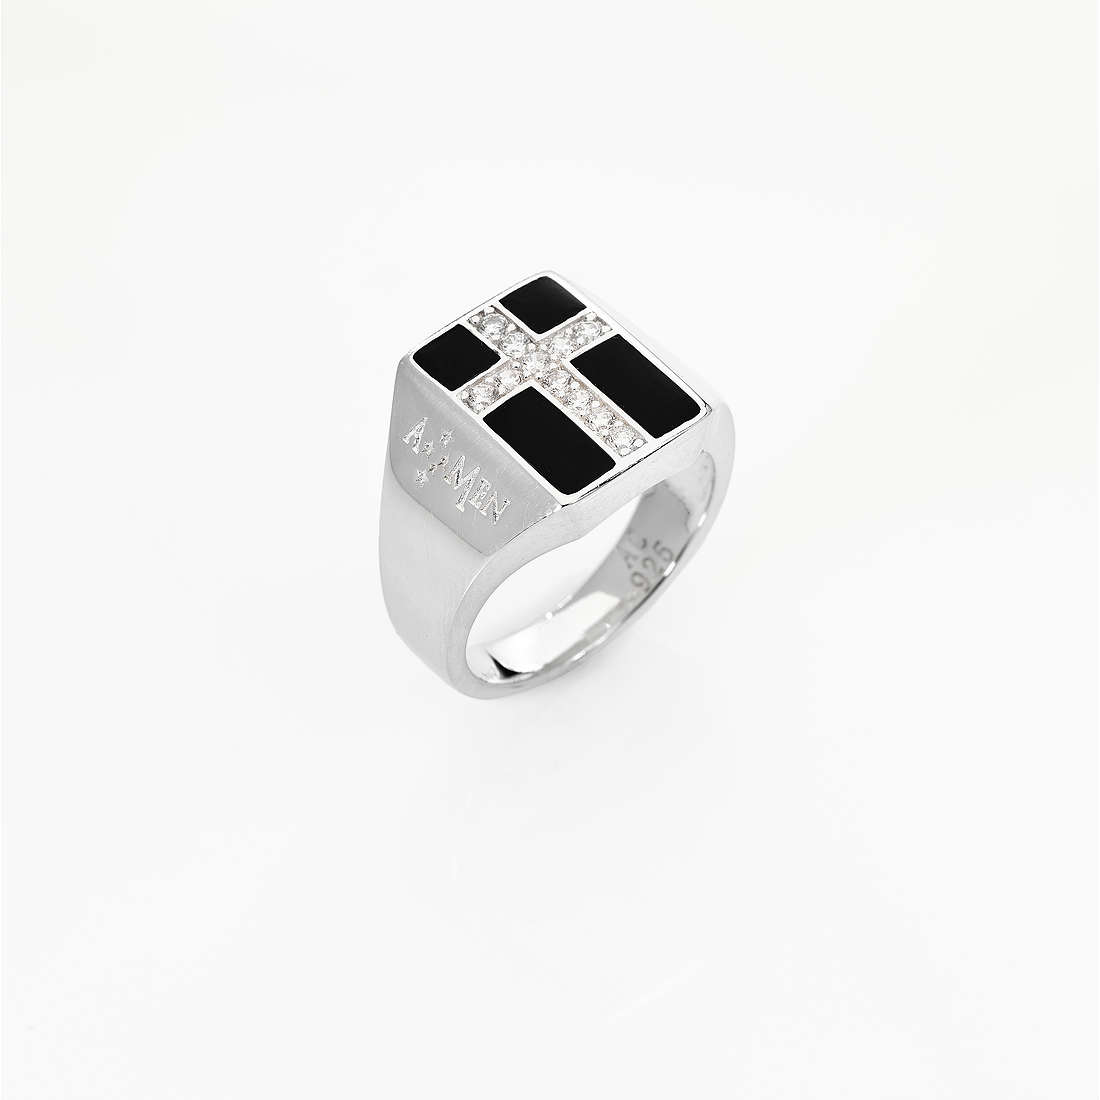 ring unisex jewellery Amen Croce ACRS-14